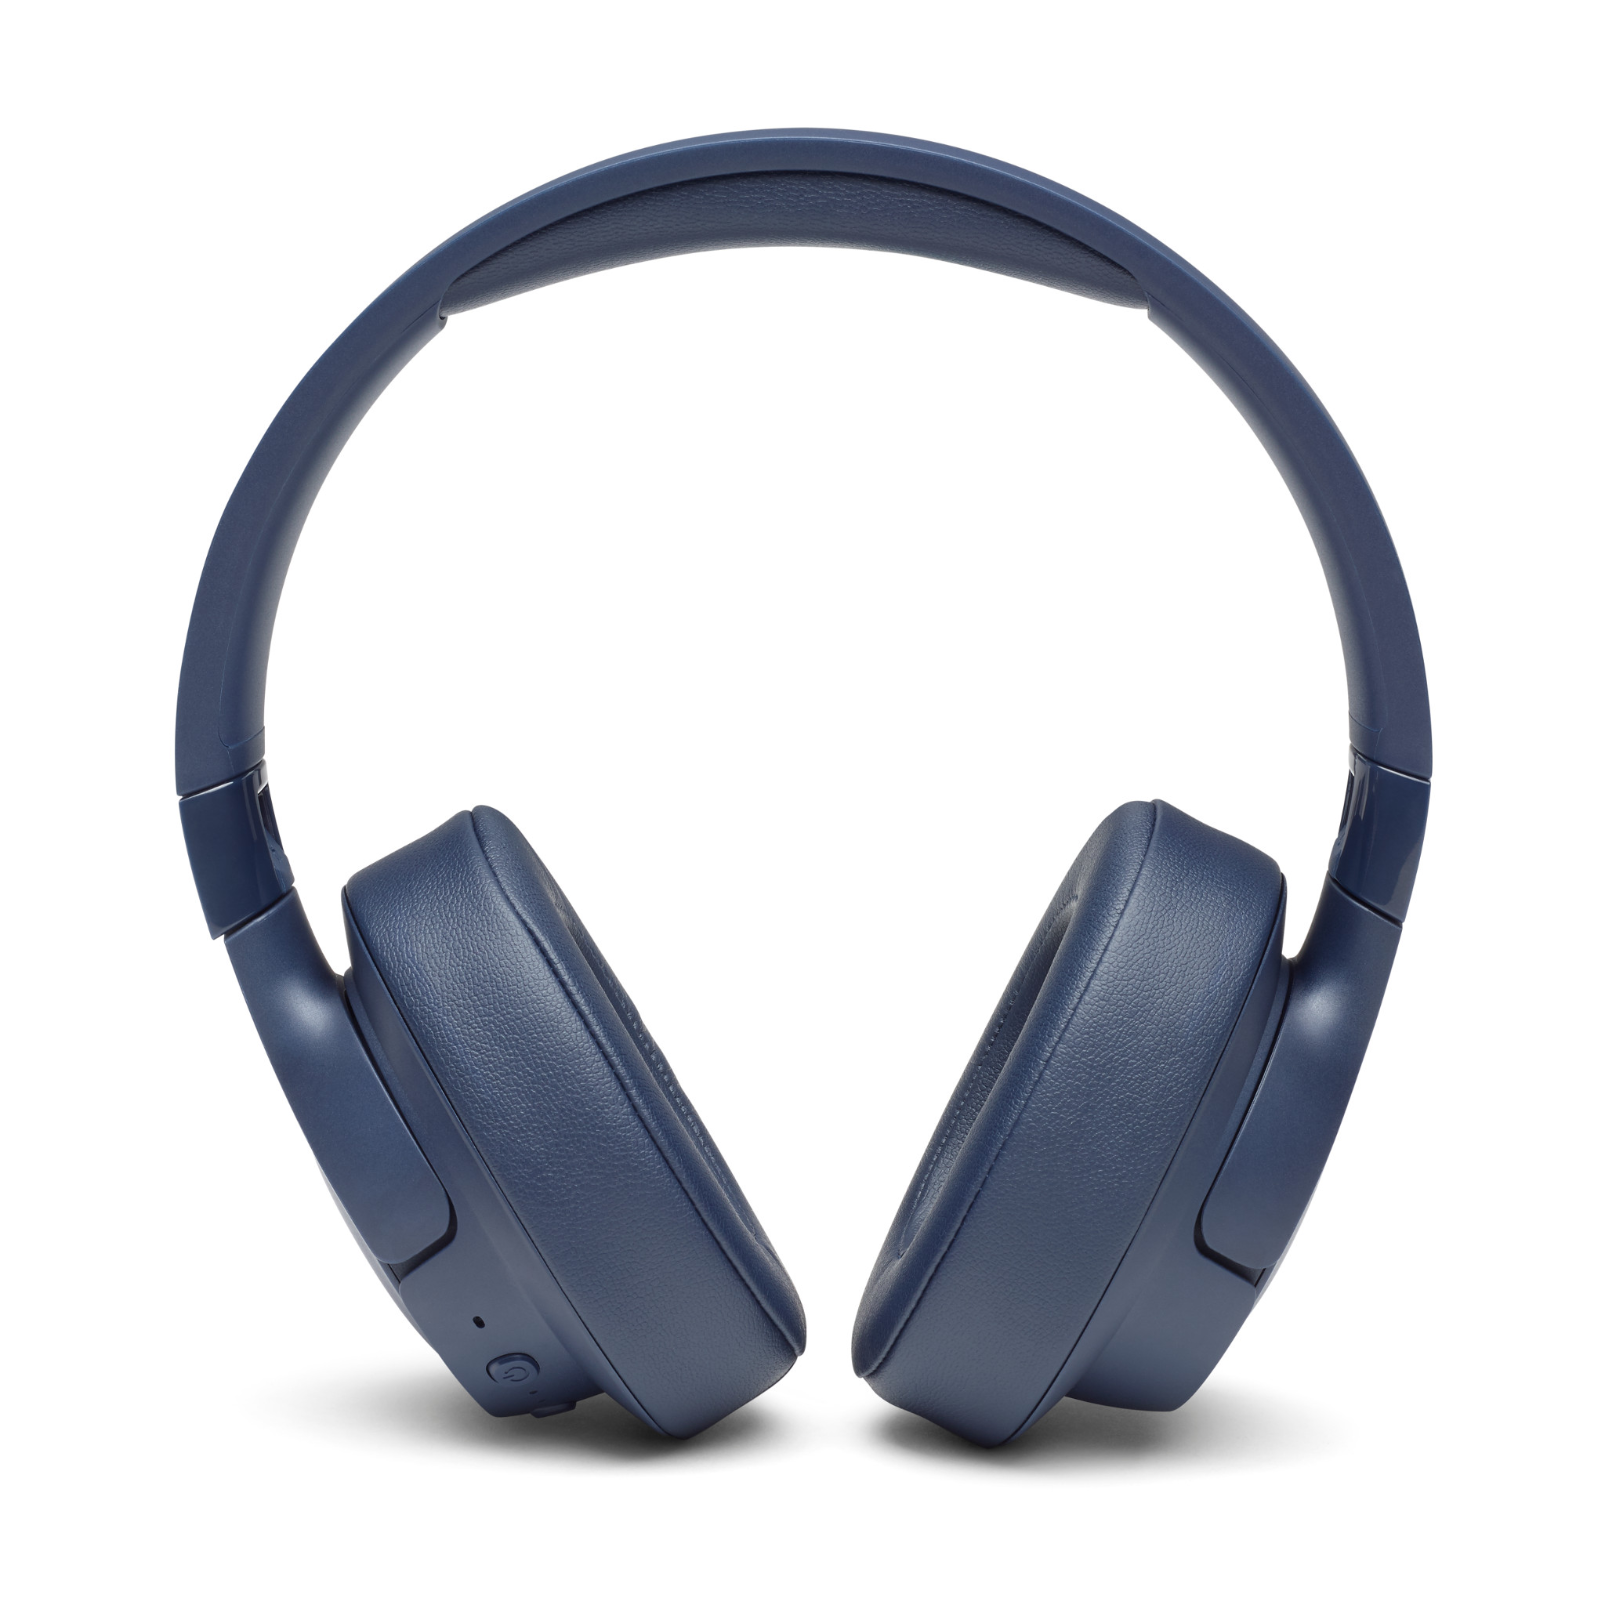 JBL TUNE 750BTNC - Blue - Wireless Over-Ear ANC Headphones - Front